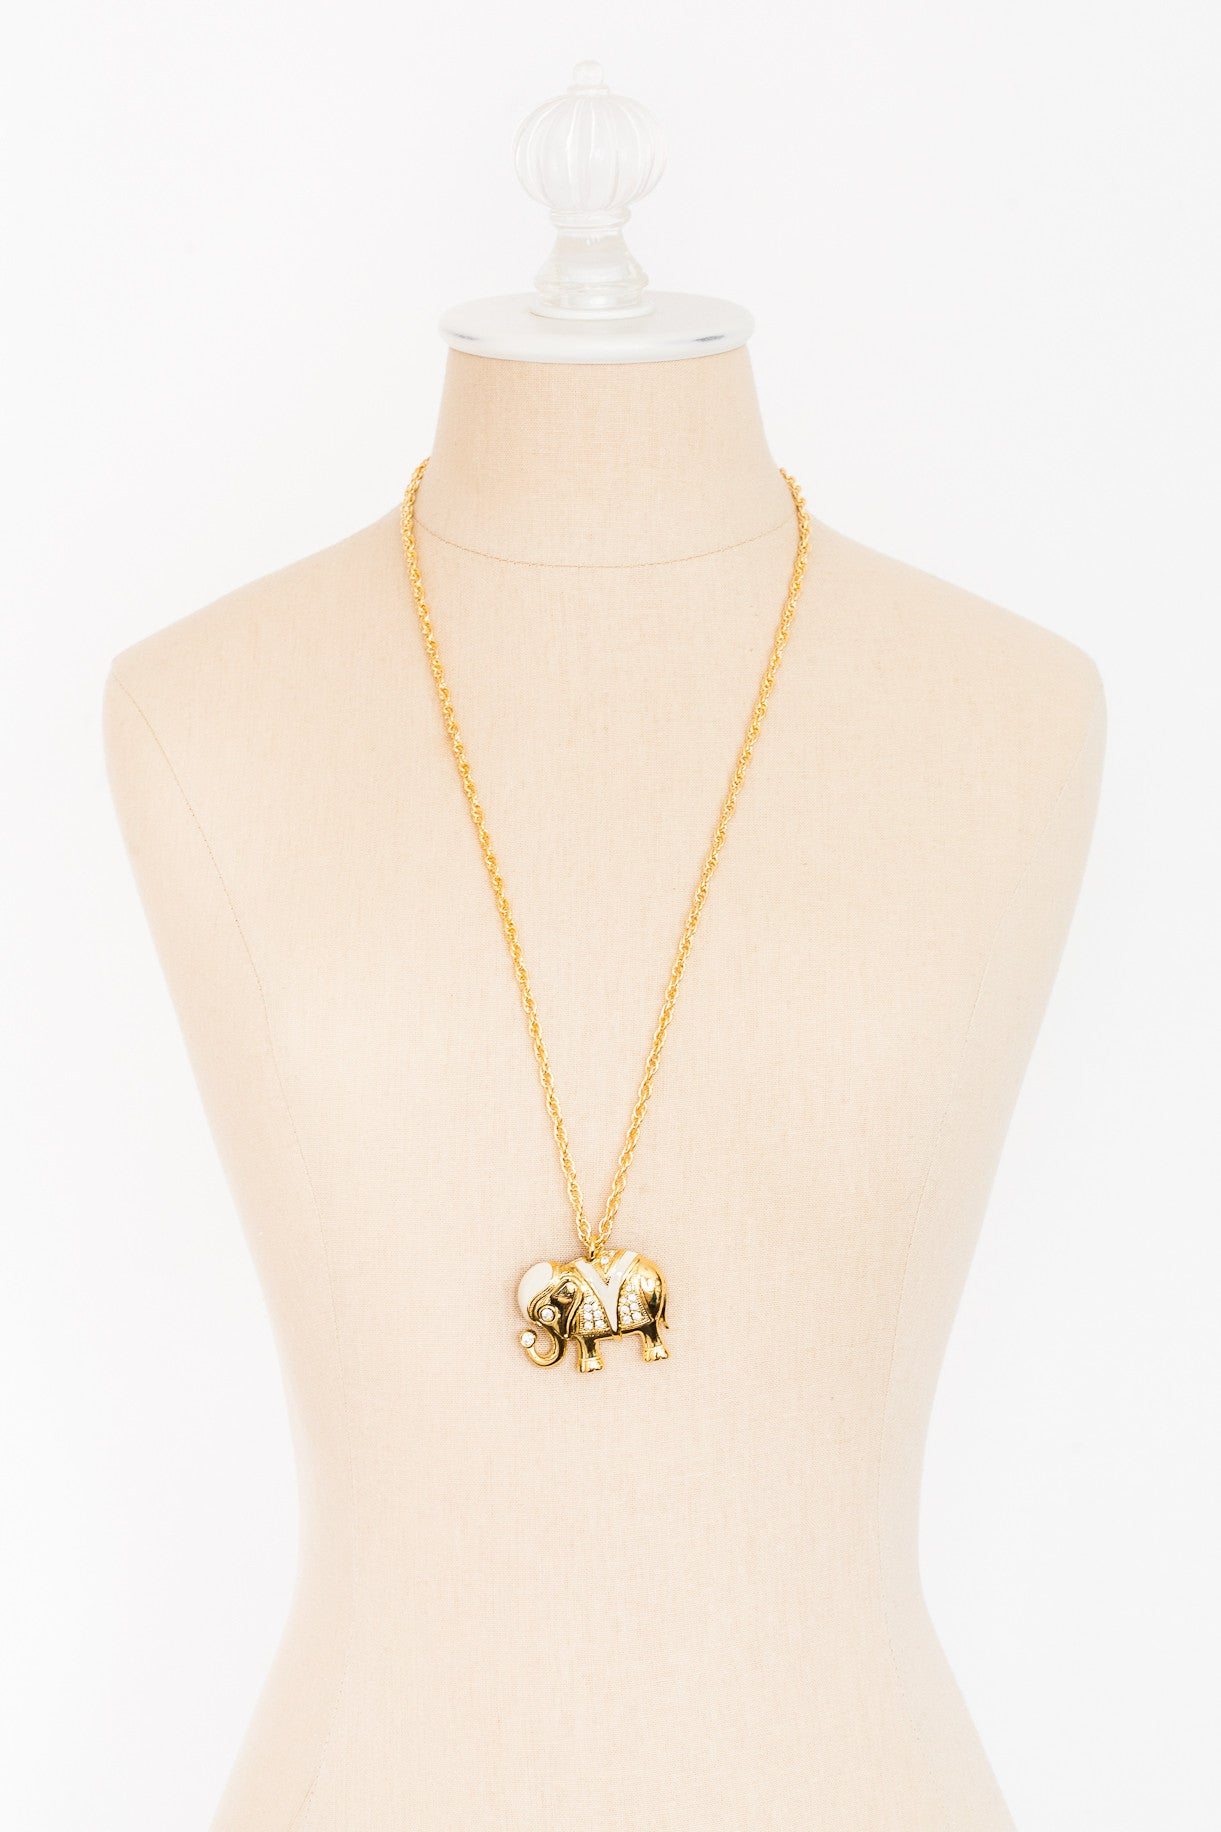 80's__Kenneth Jay Lane__Enamel Elephant Necklace